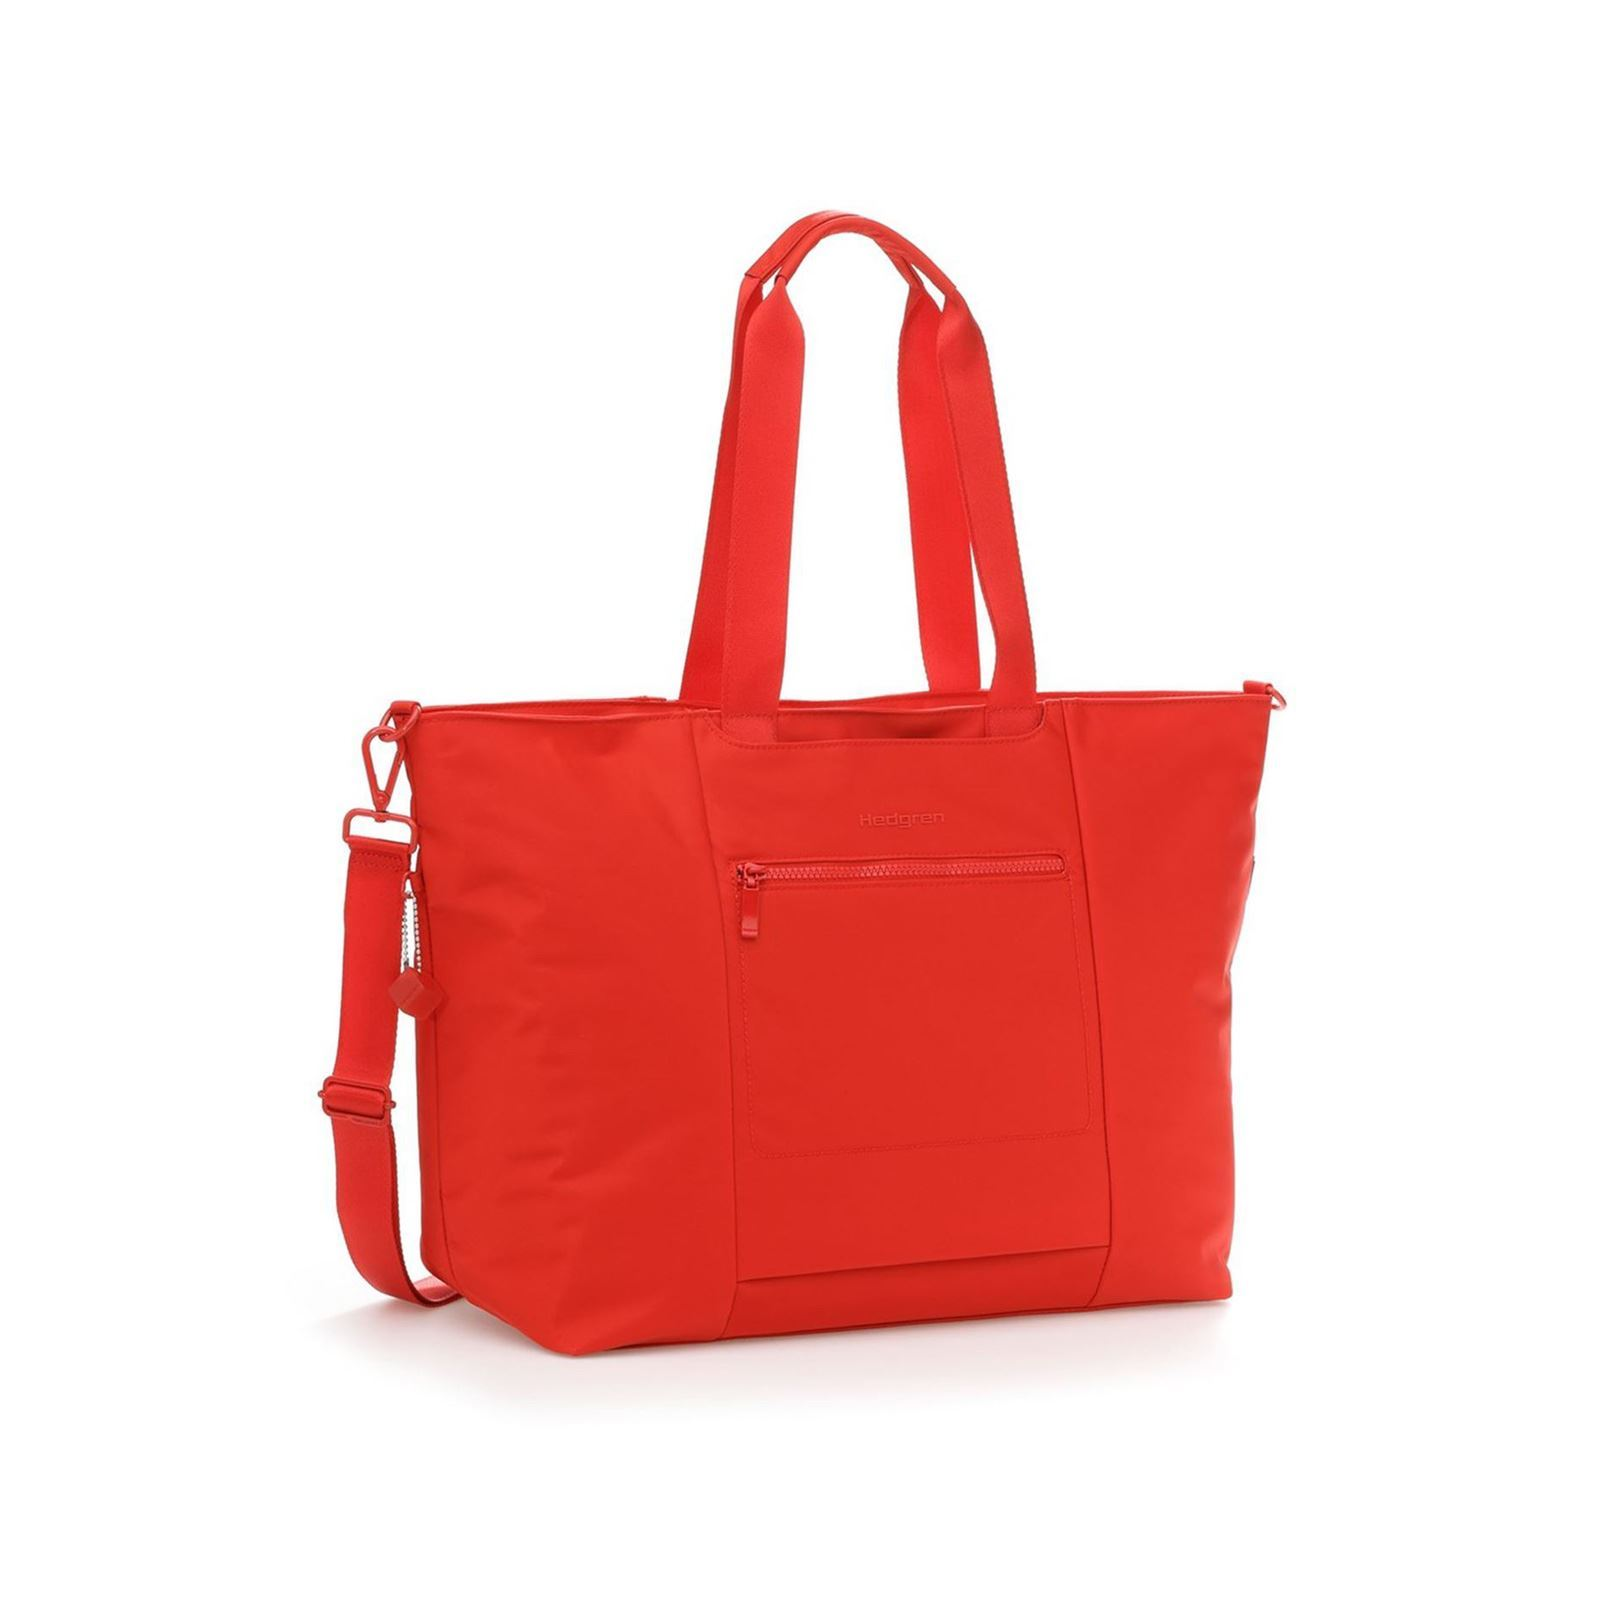 c4d6dc382265e3 Hedgren Inter City XL - Sac shopping - rouge   BrandAlley